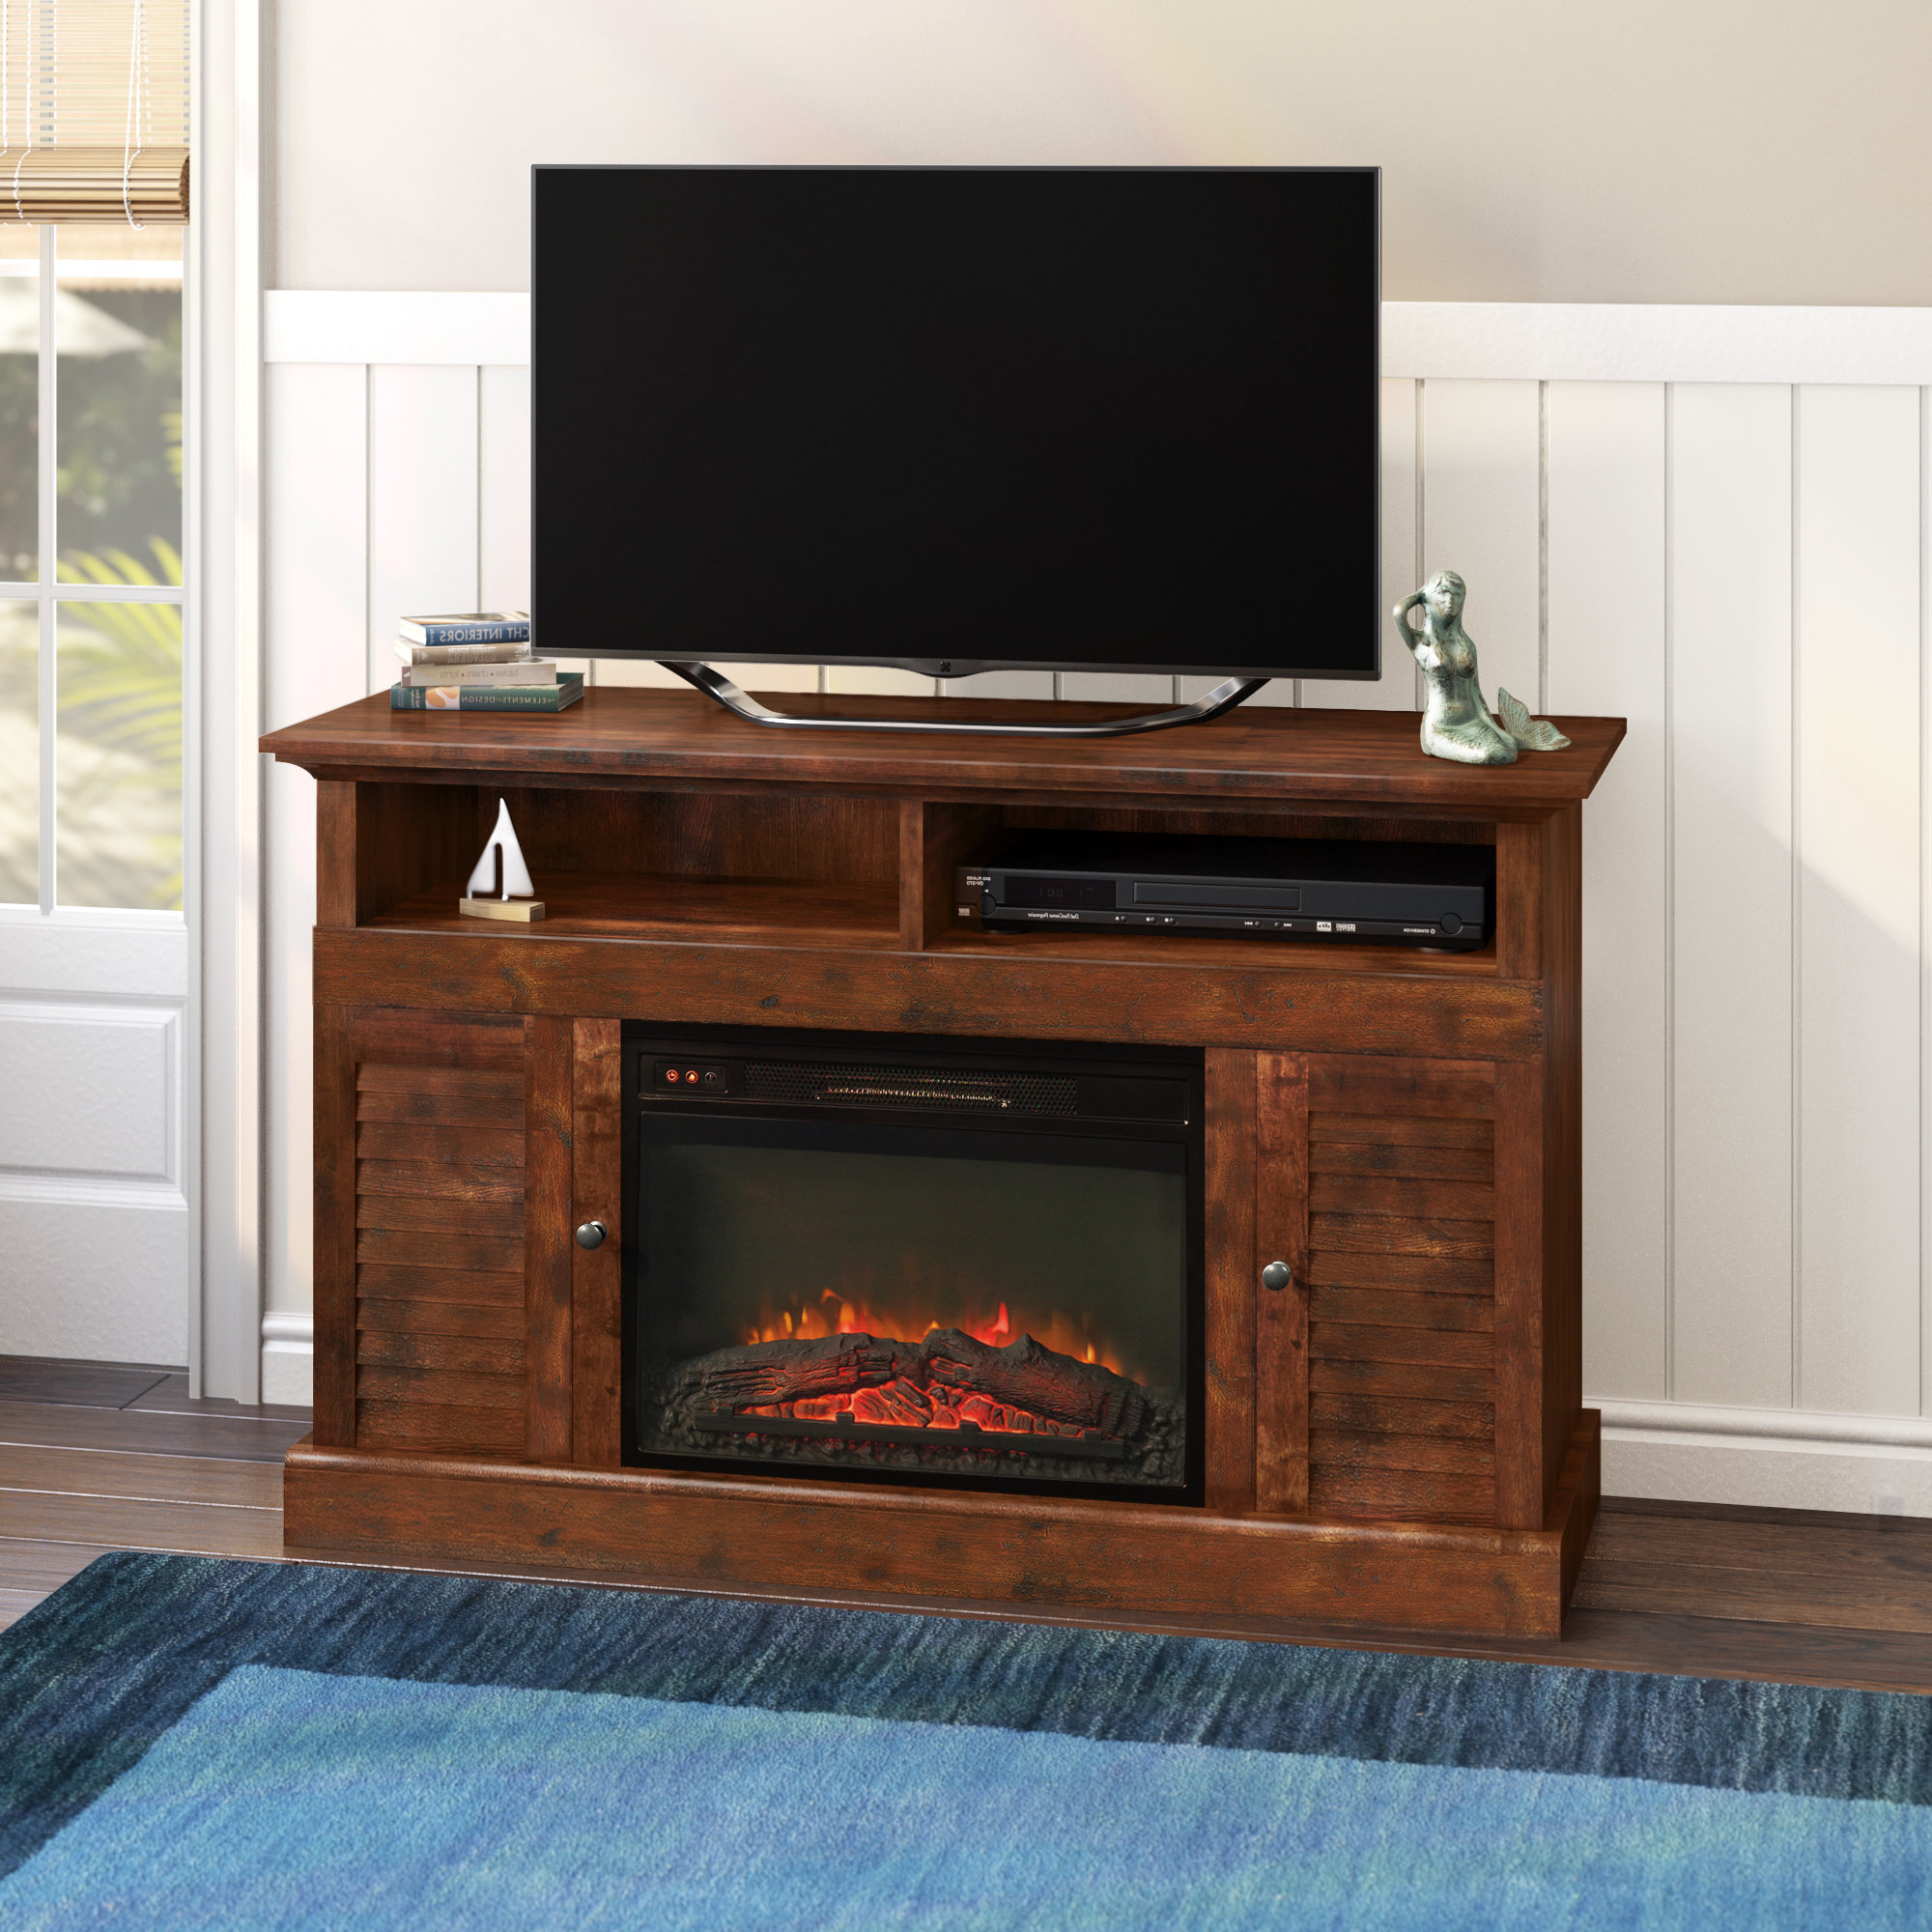 Sinclair Blue 54 Inch Tv Stands Intended For Most Current 60 69 Inch Tv Stand Fireplaces You'll Love (View 14 of 20)